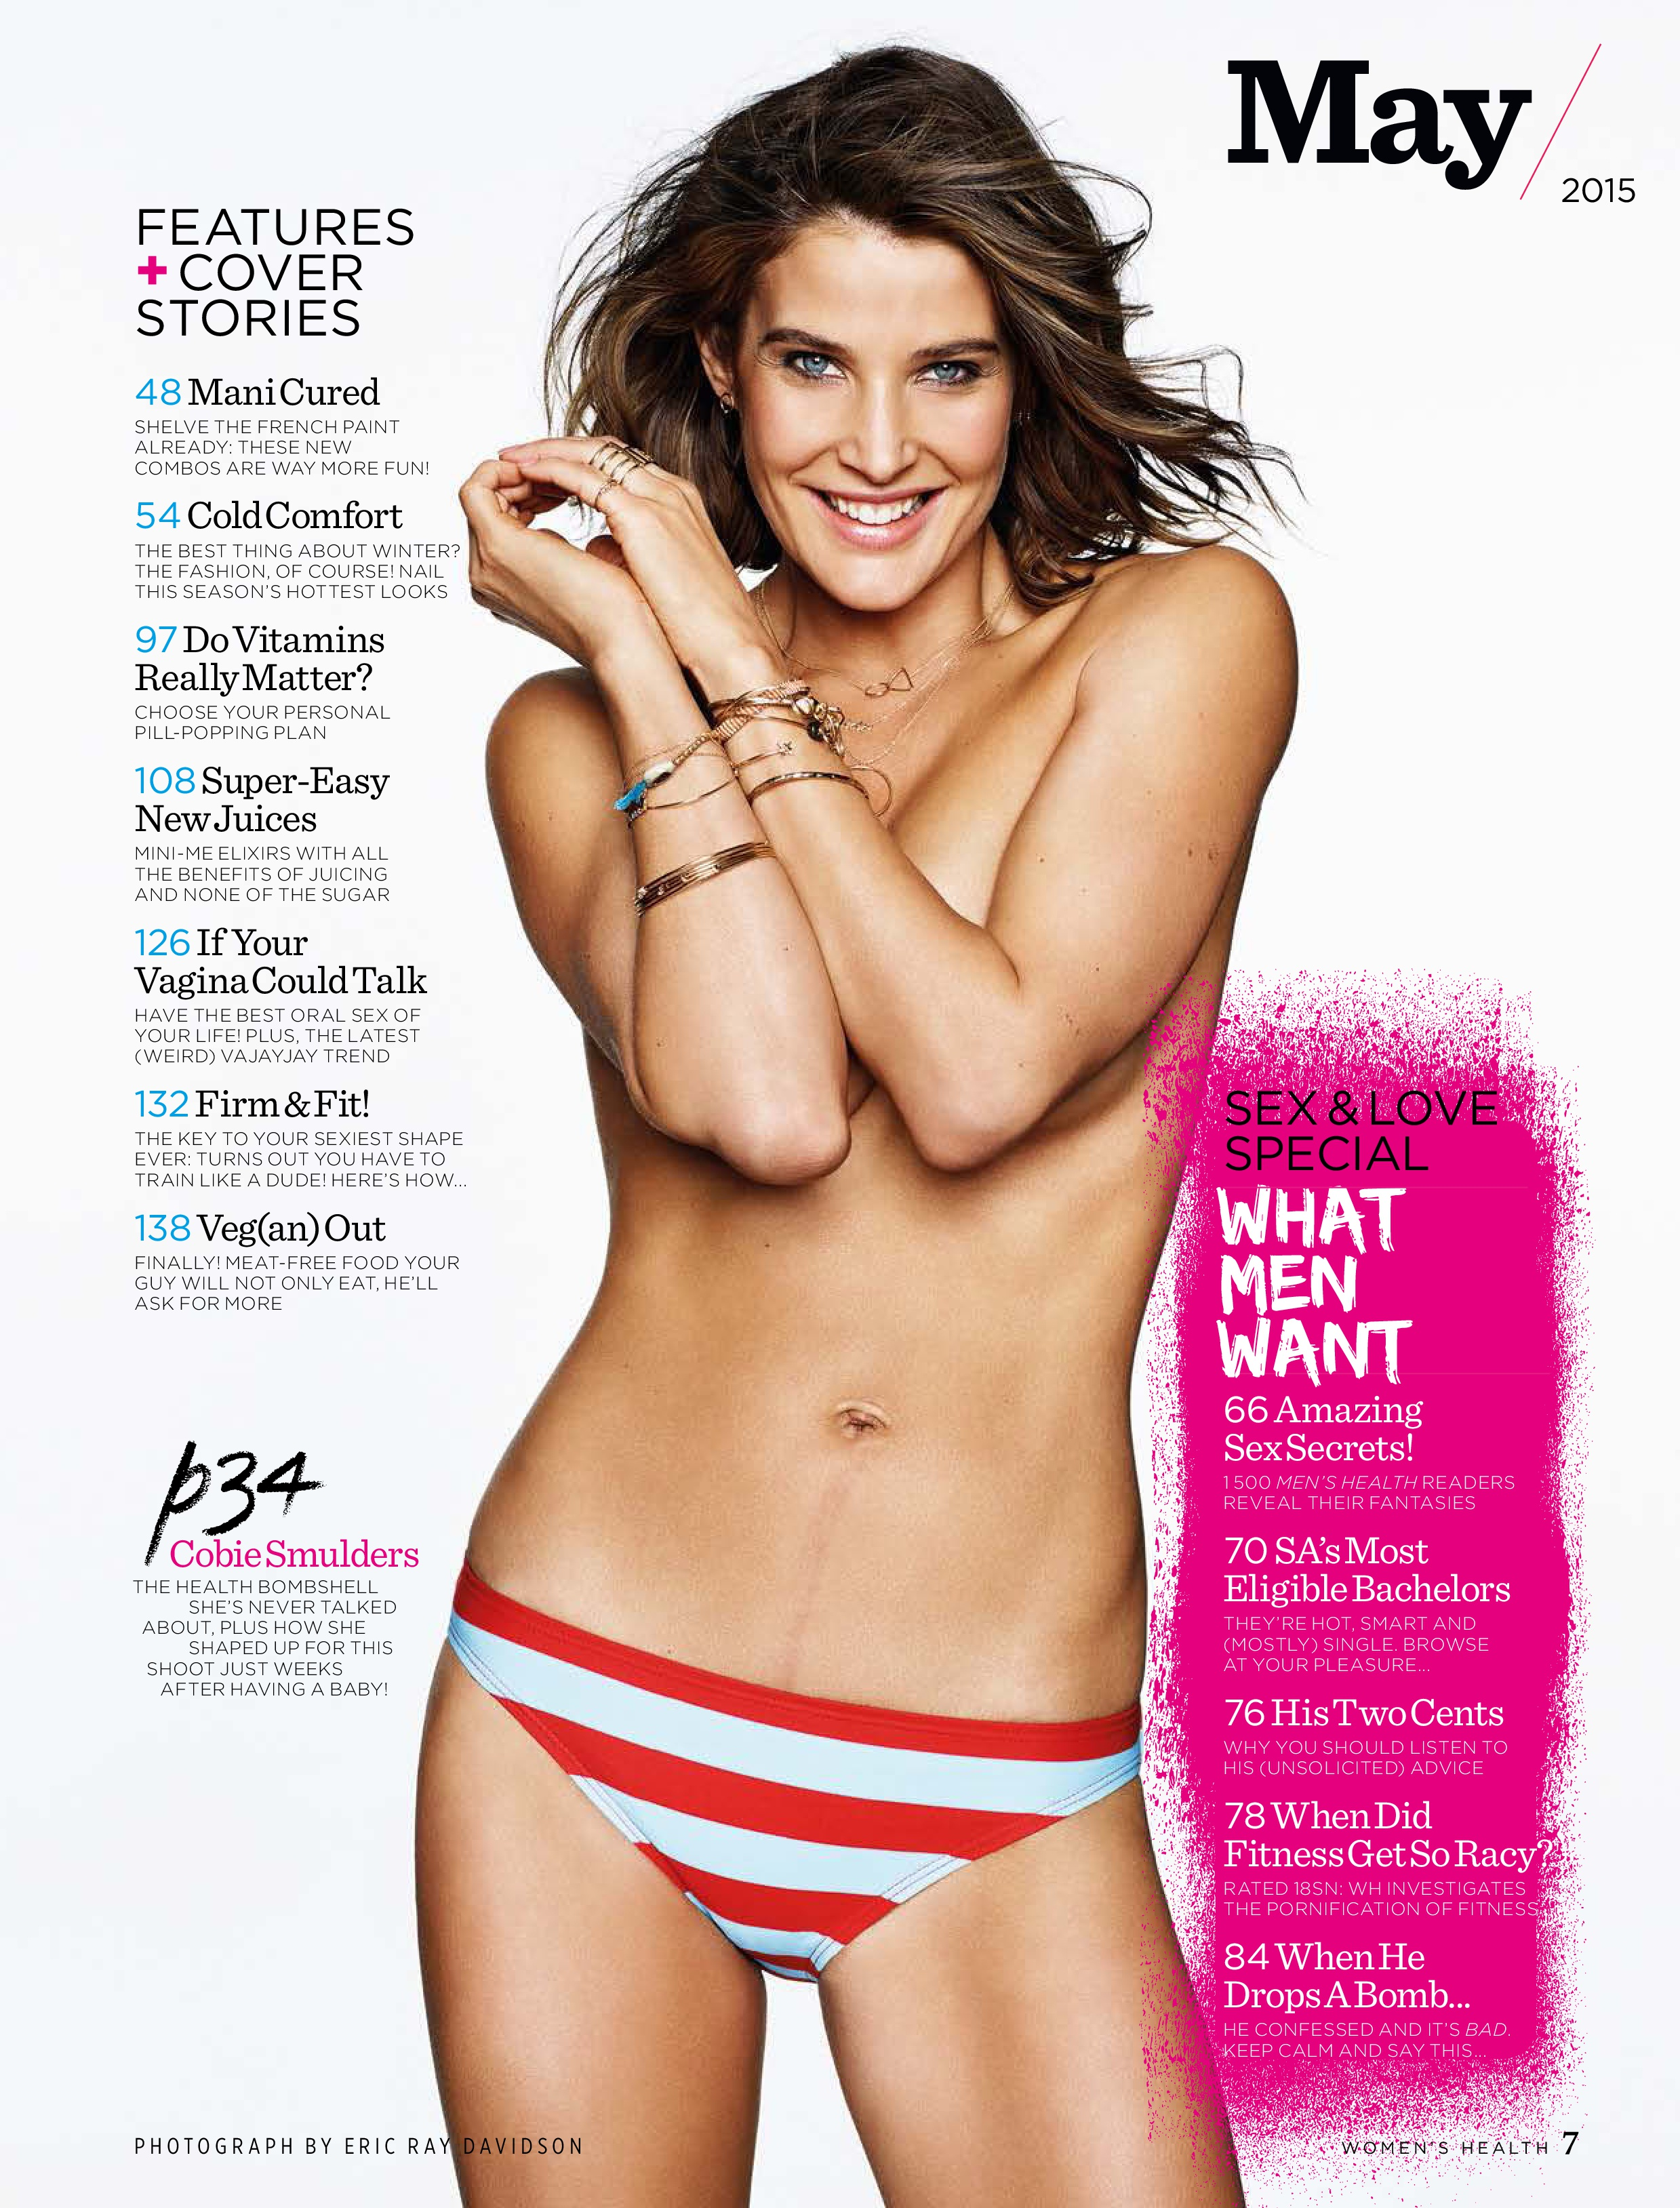 Cobie Smulders Topless (4 Photos)